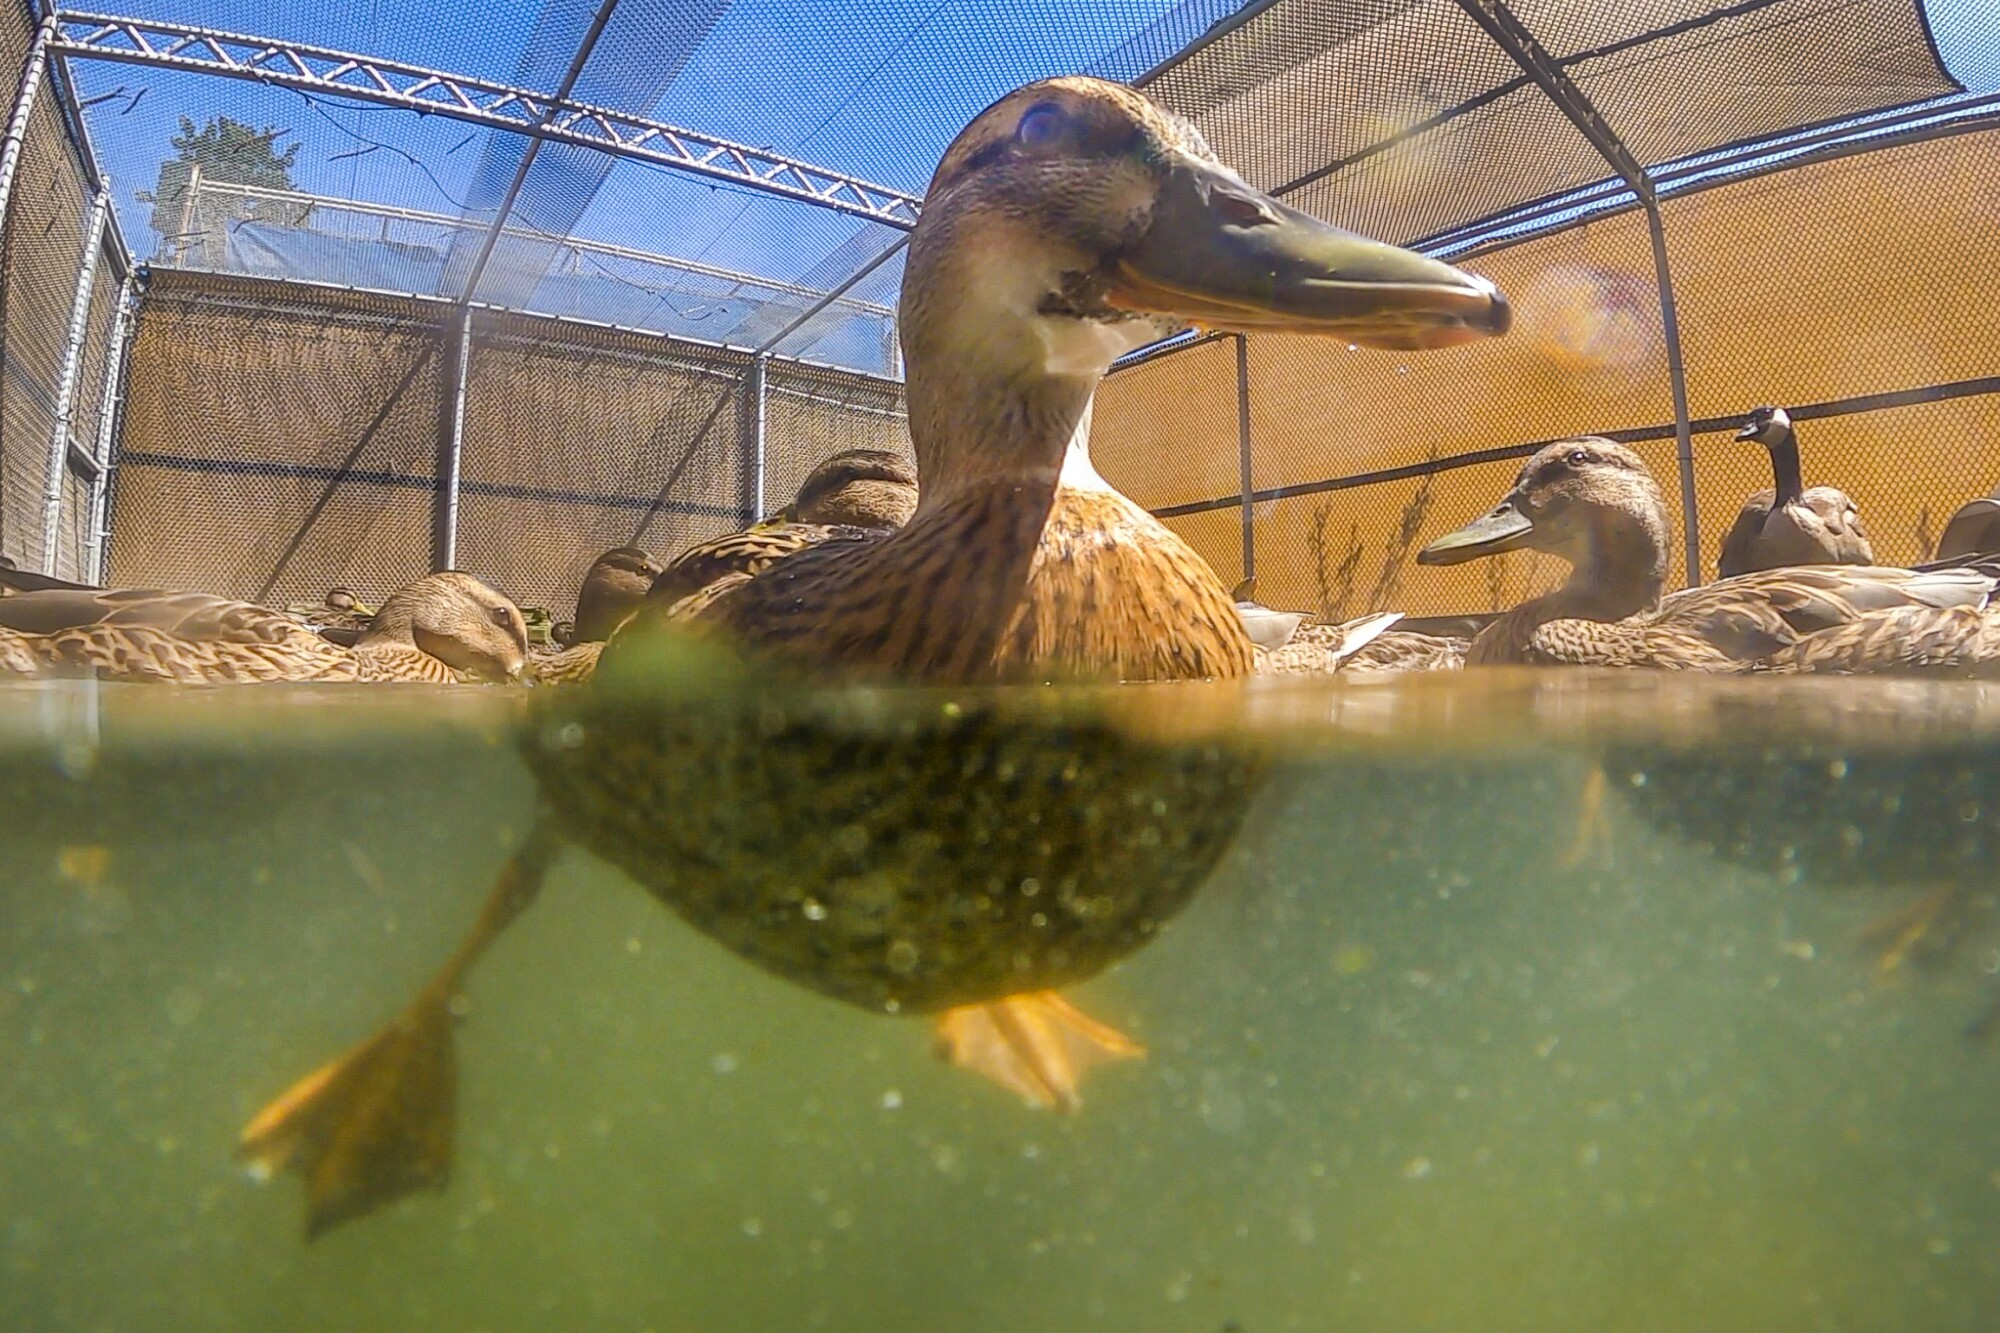 A variety of ducks and ducklings swim at the Wetlands and Wildlife Care Center